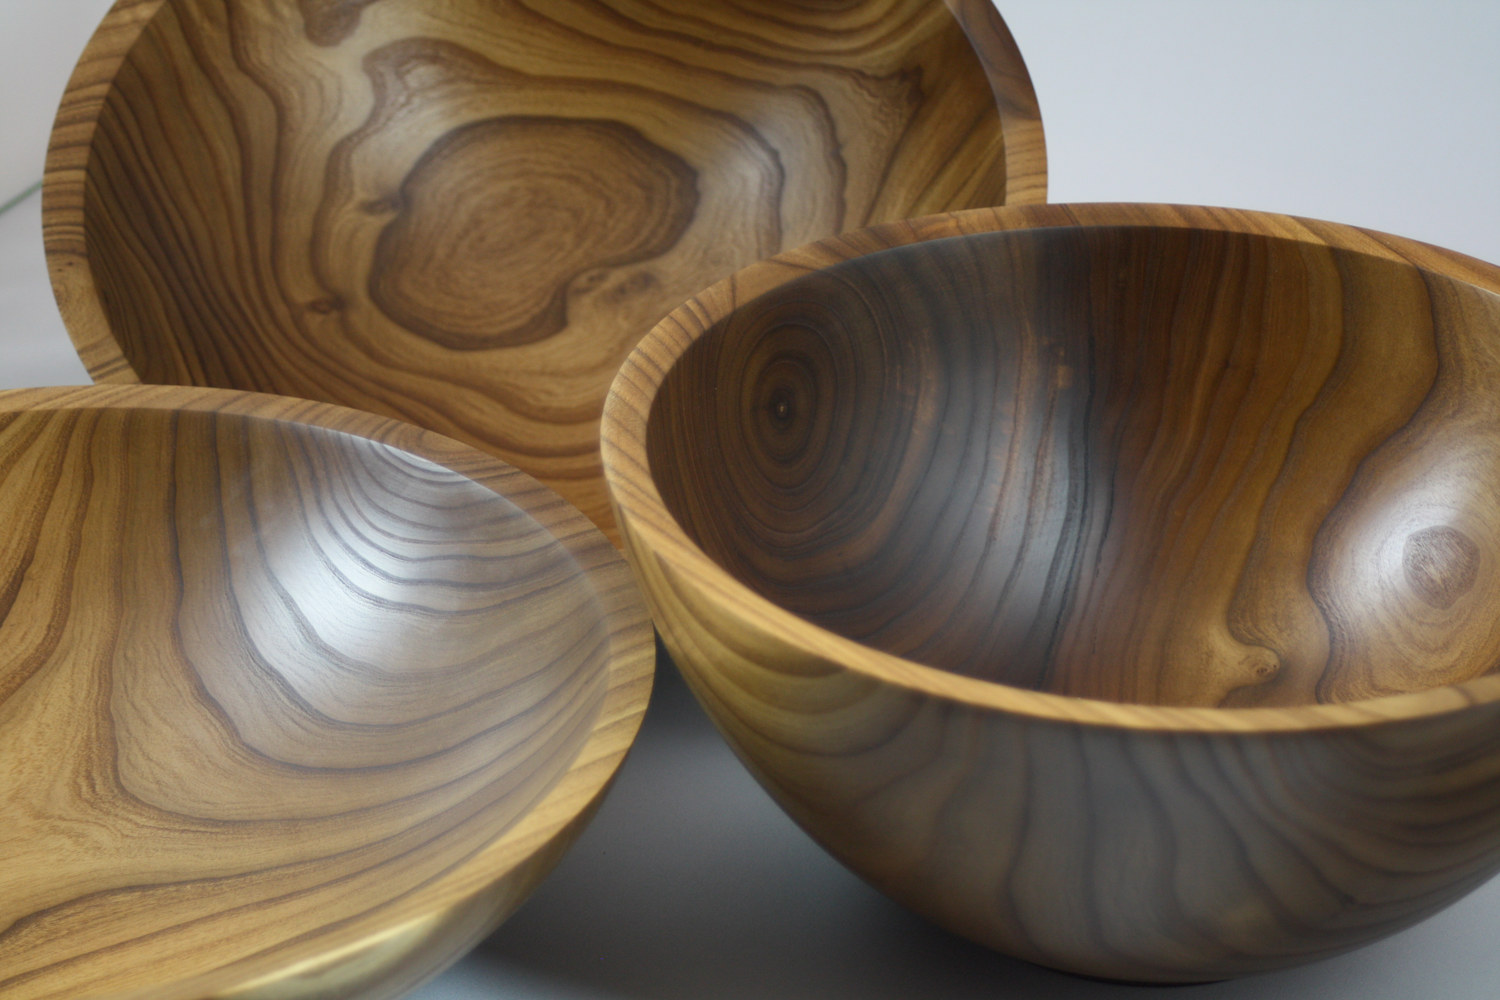 Willow Bowls 2632 by Jocelyn Duchek